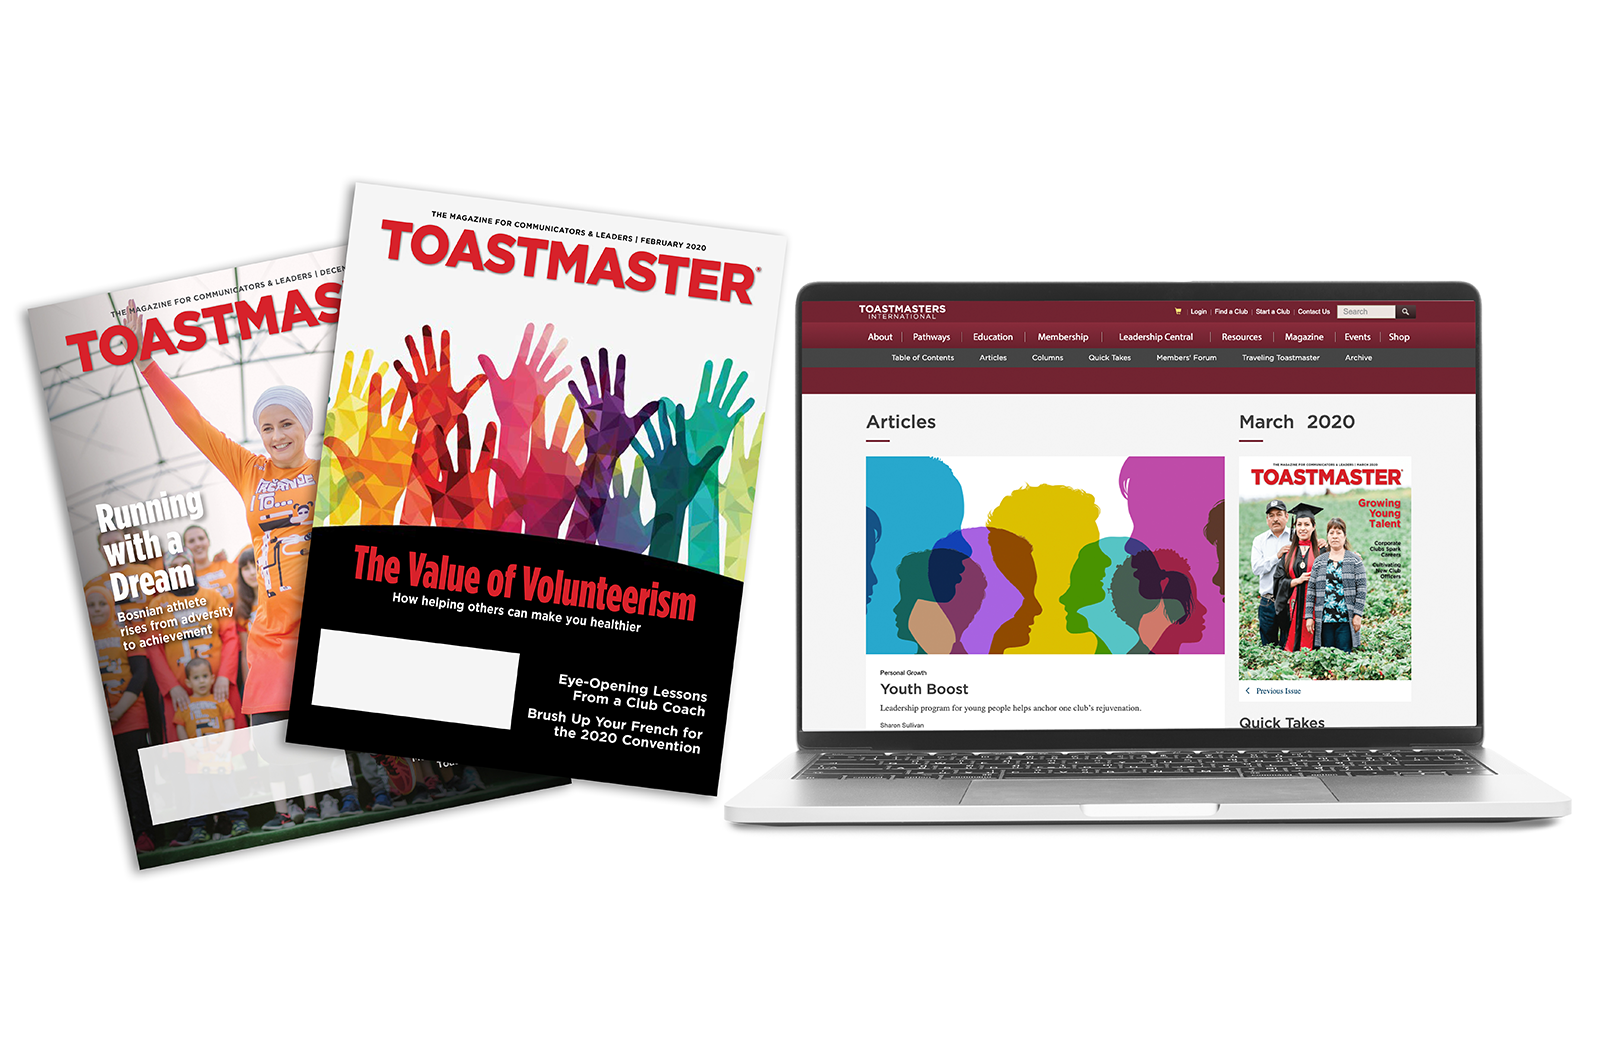 Toastmaster magazines in print and online